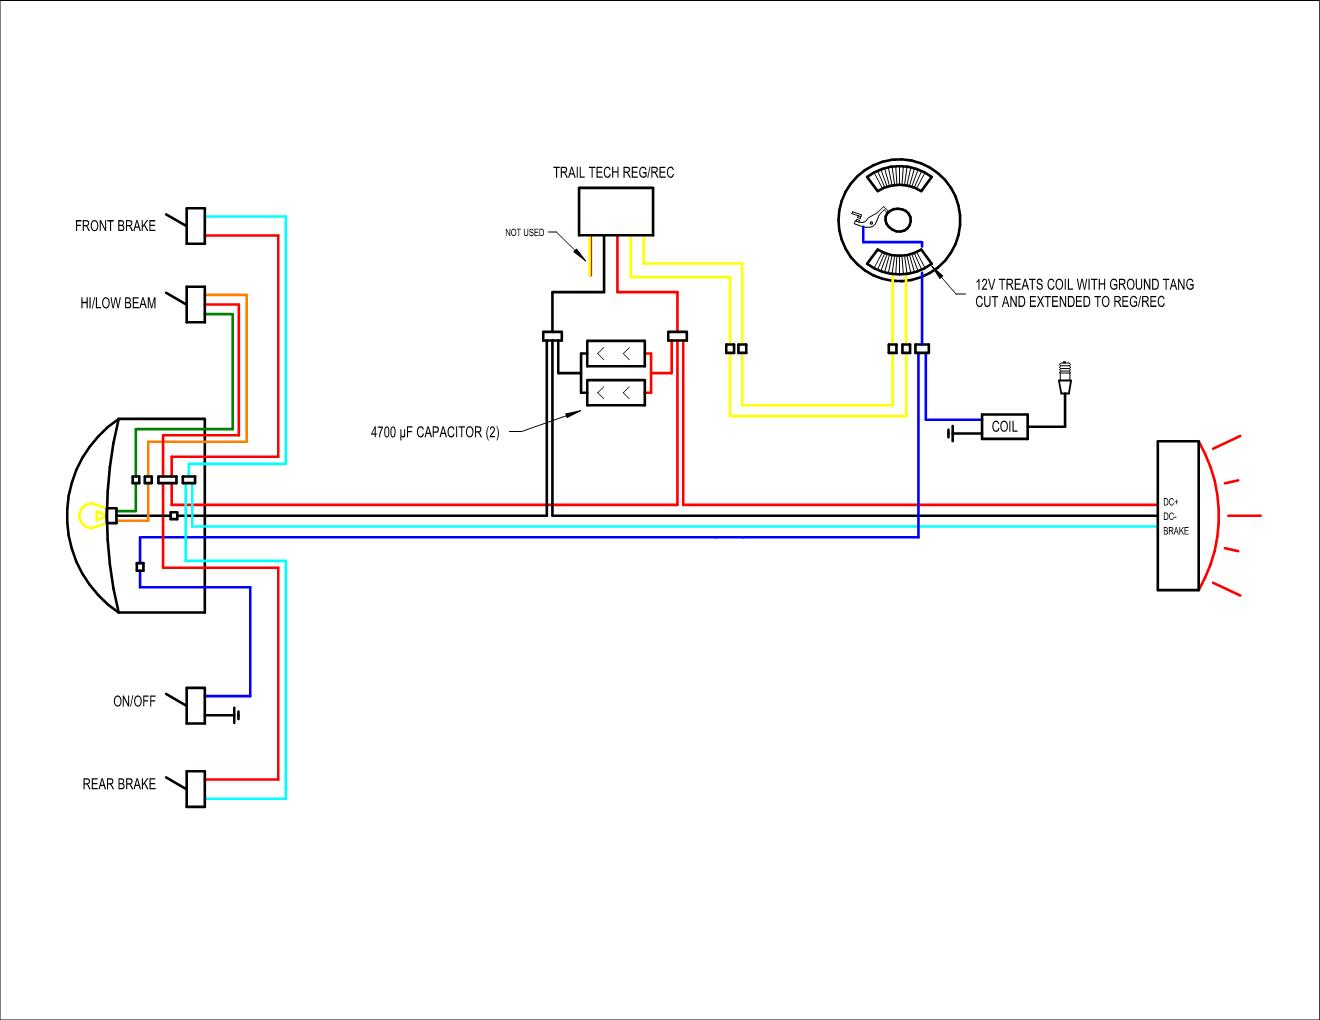 i will now be working on my own wiring diagram but it will prob look like  the one above